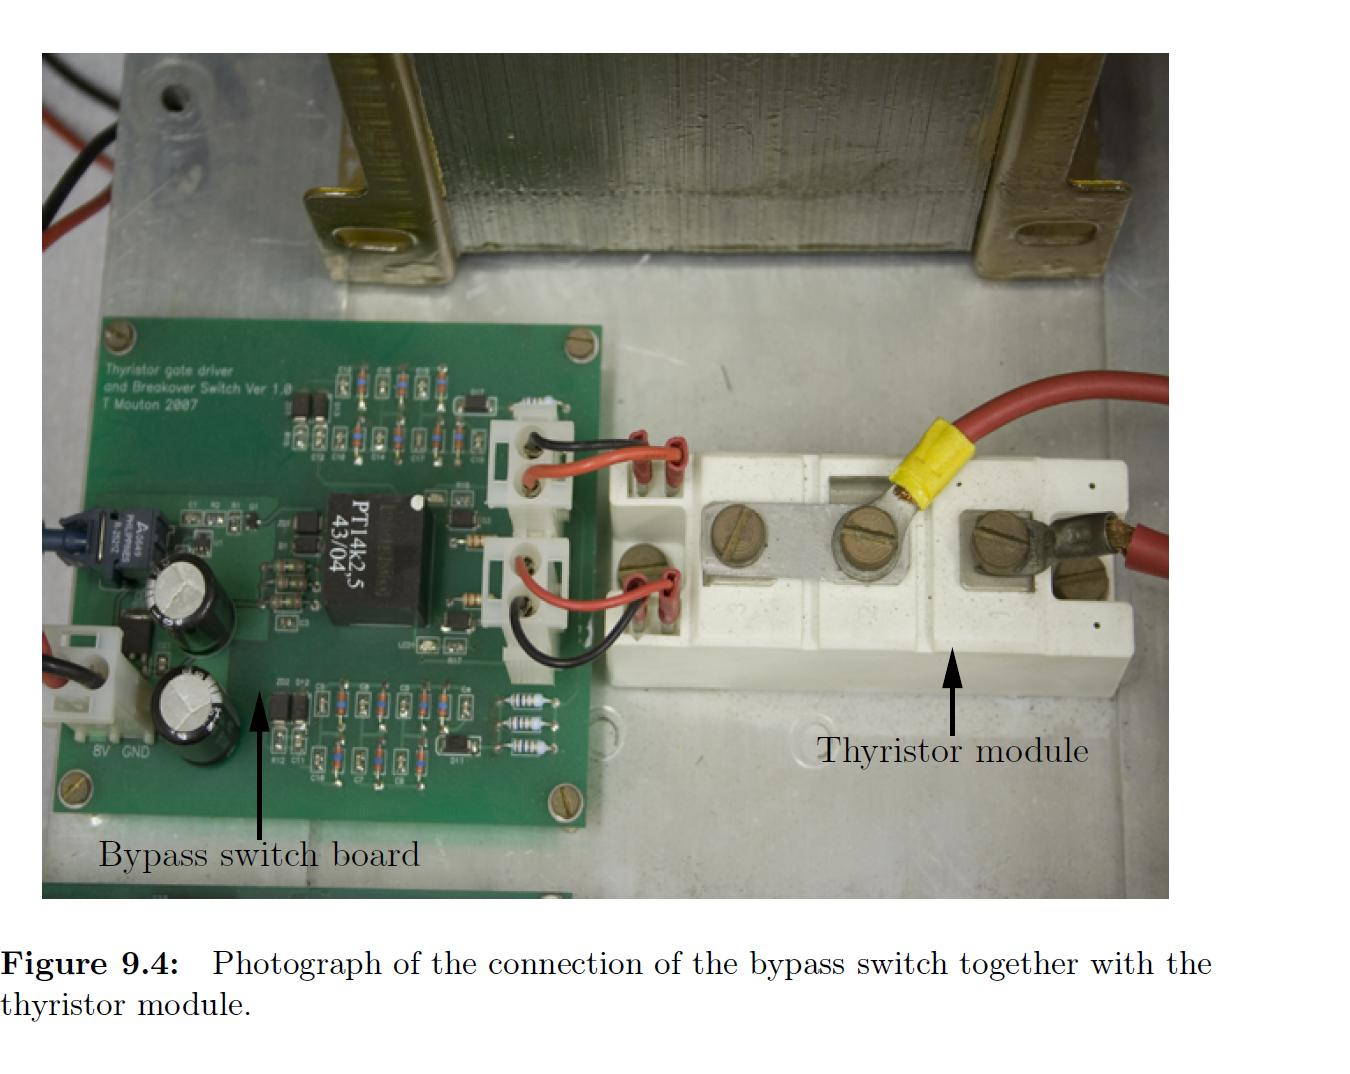 master thesis electrical power Electrical engineering—ms, phd fast facts department research is funded by multiple agencies and corporations, including the national science foundation, the us army and air force, intelligent automation, sintef energy research, xcel energy, eaton, the michigan department of transportation, international transmission, american electric power.